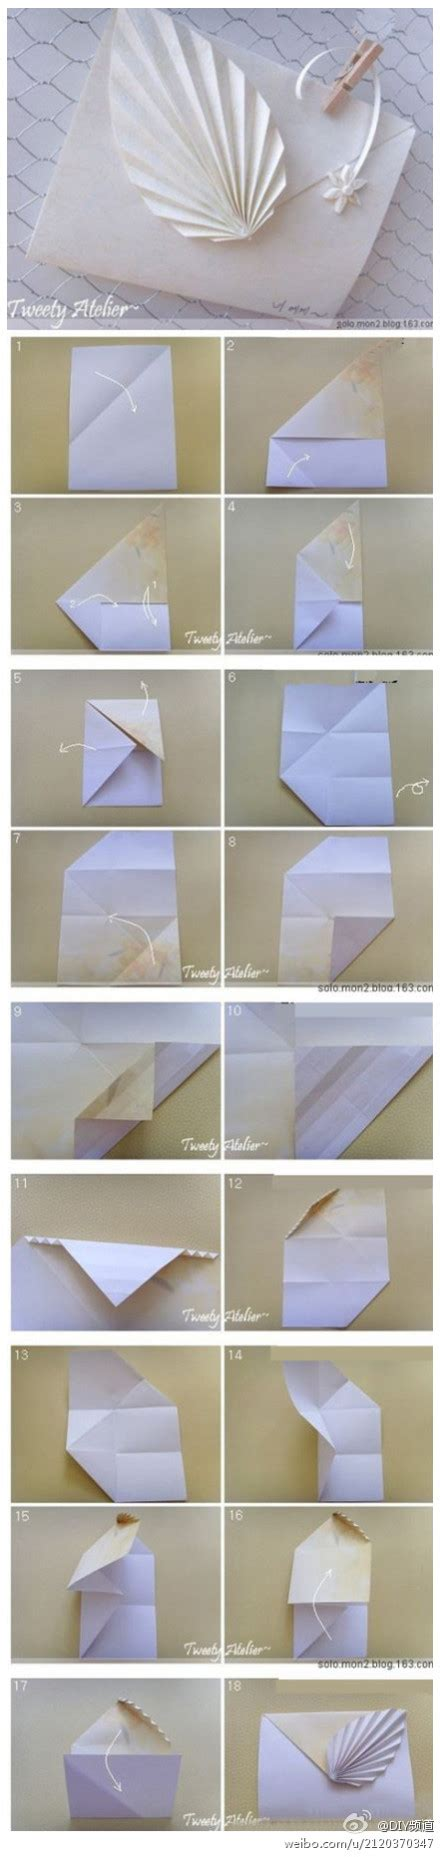 Origami Leaf Envelope - crafts lightcameramonkey page 2